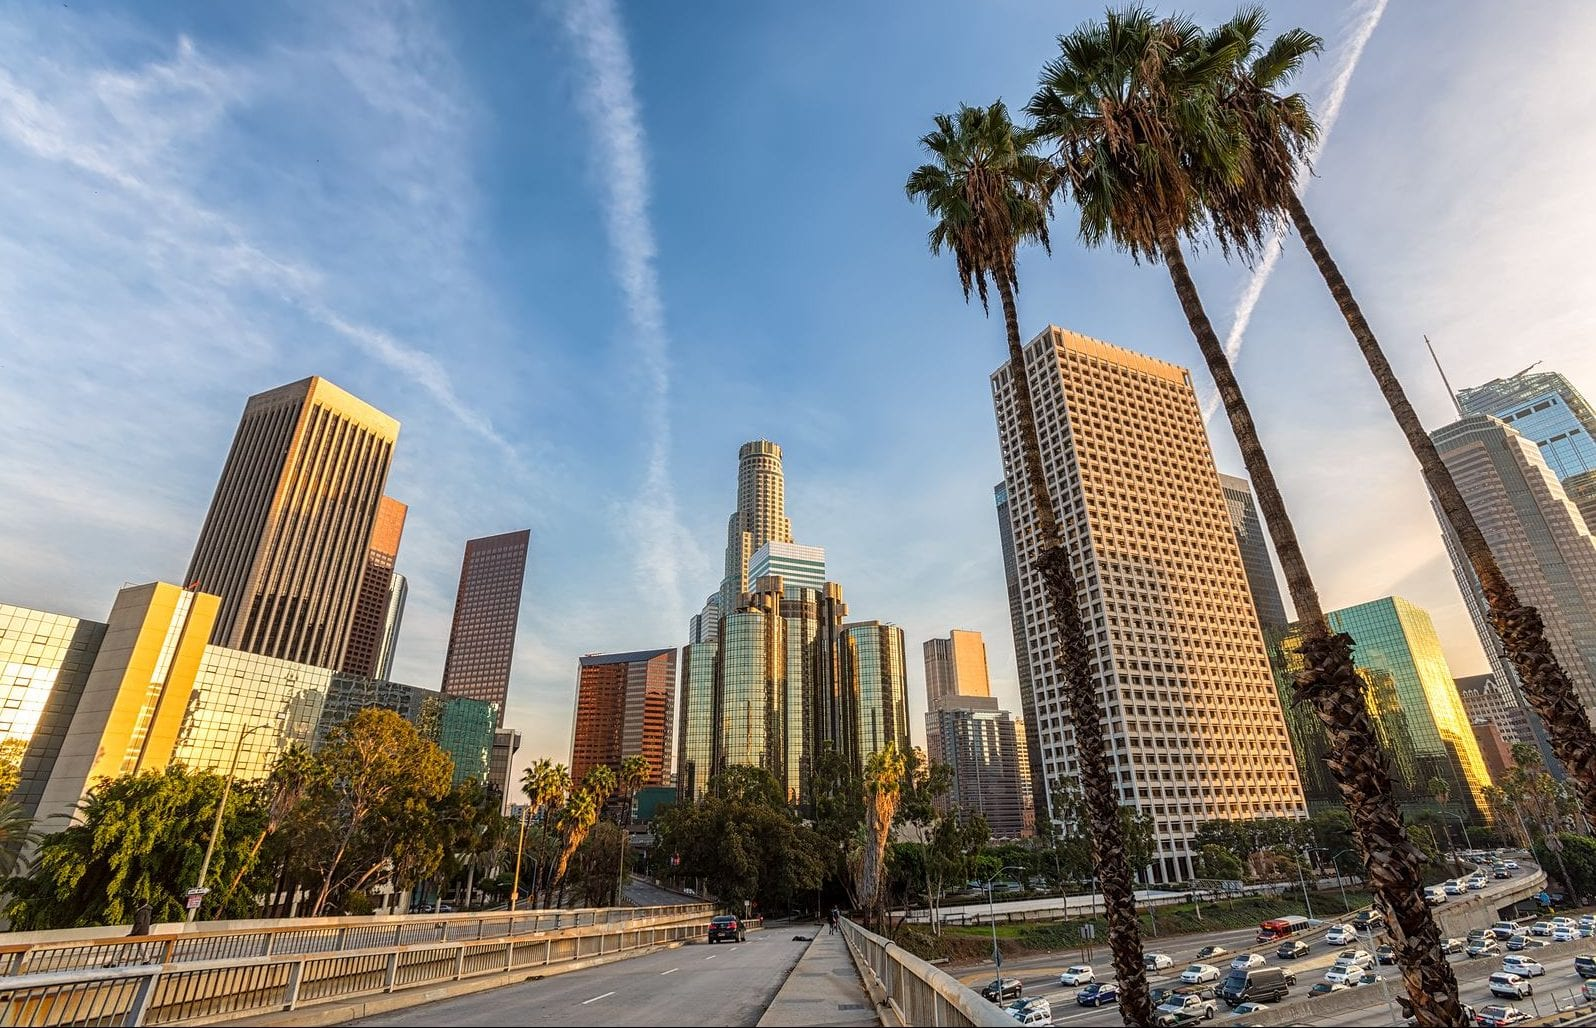 California Real Estate Market: Best Places to Buy Rental